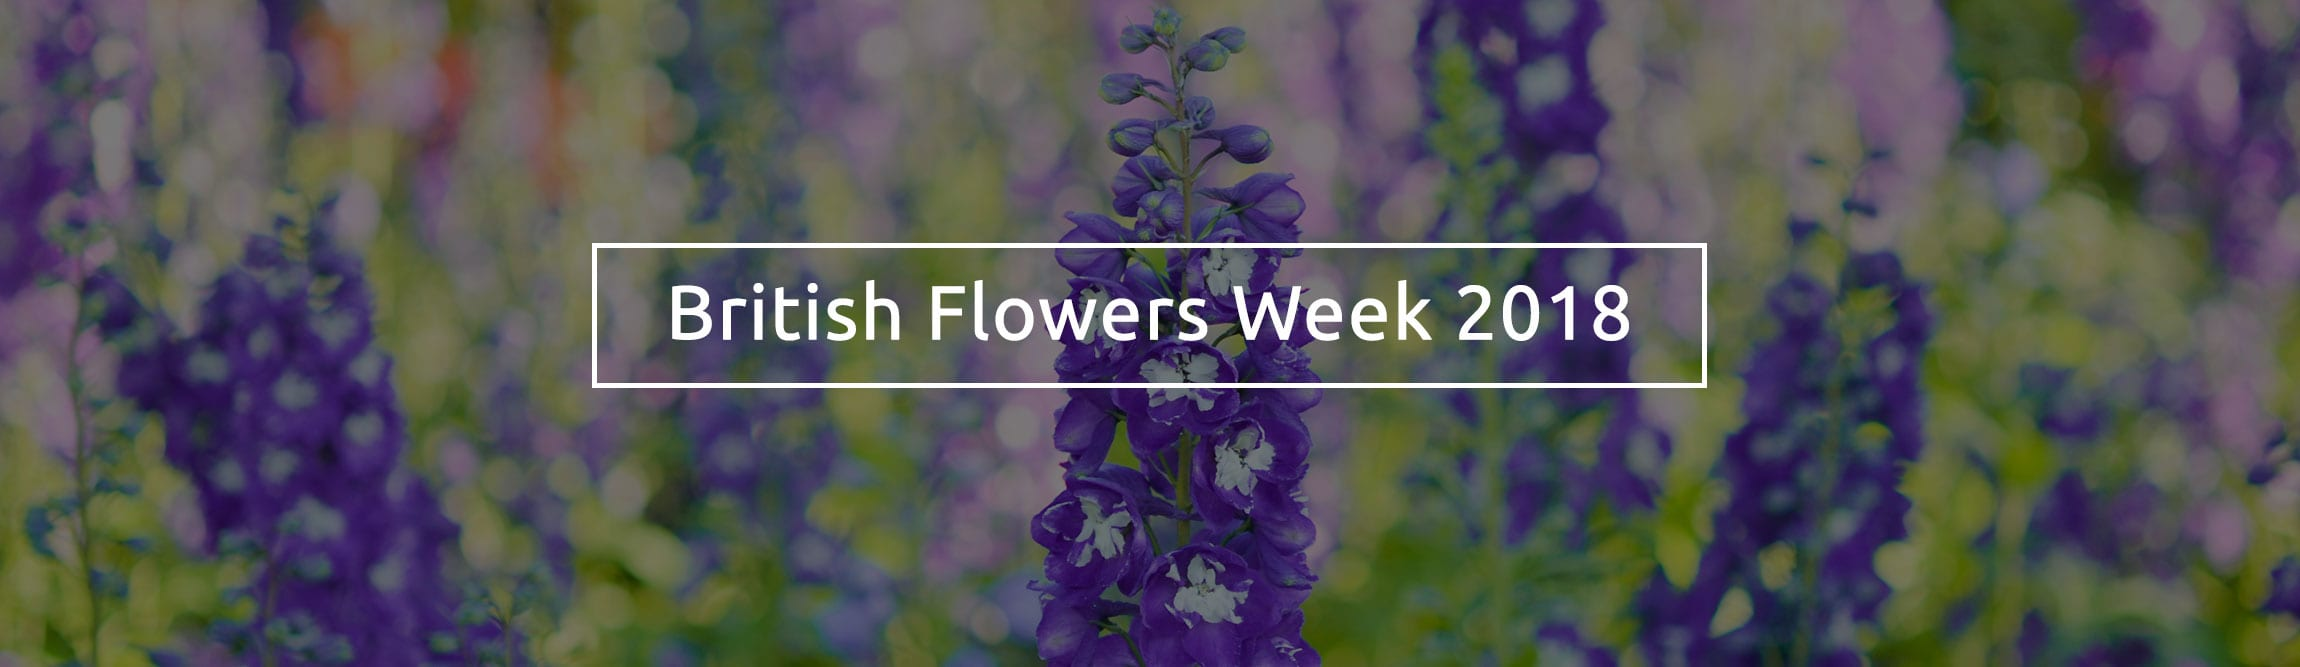 British-Flowers-week-2018